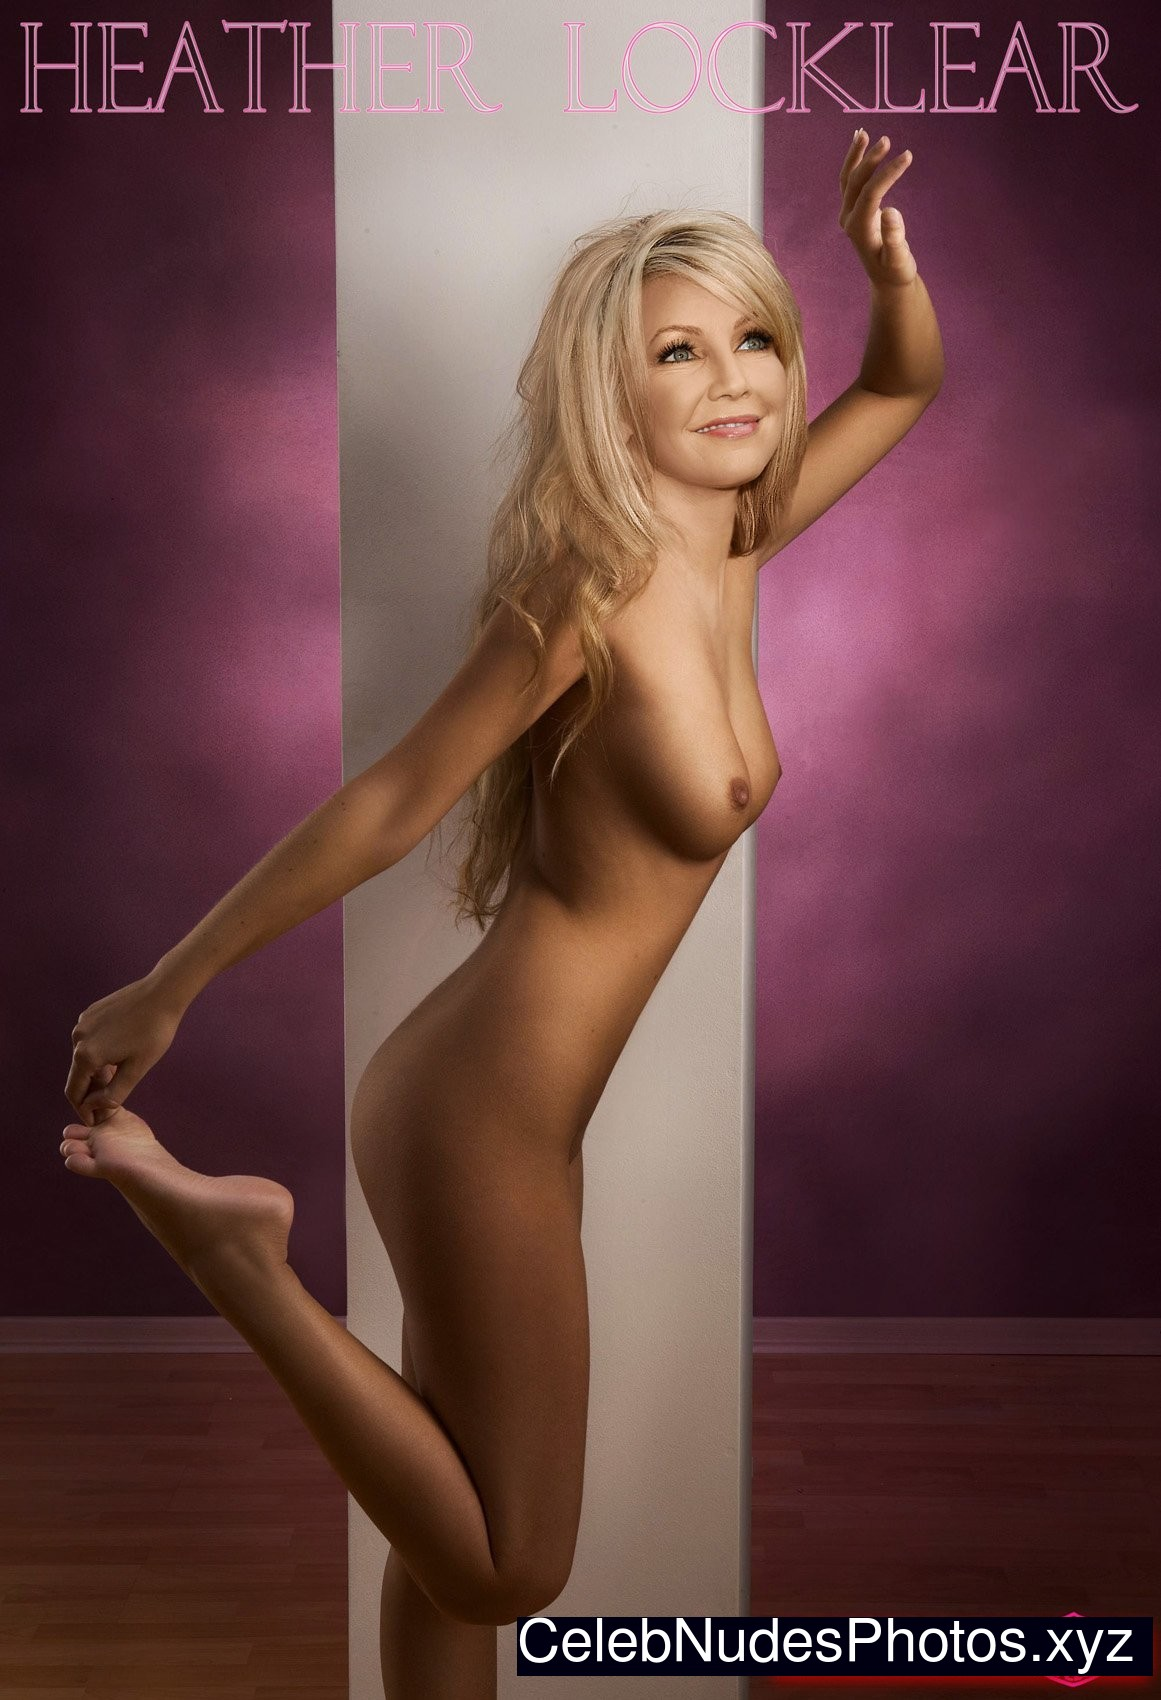 heather locklear nude photos